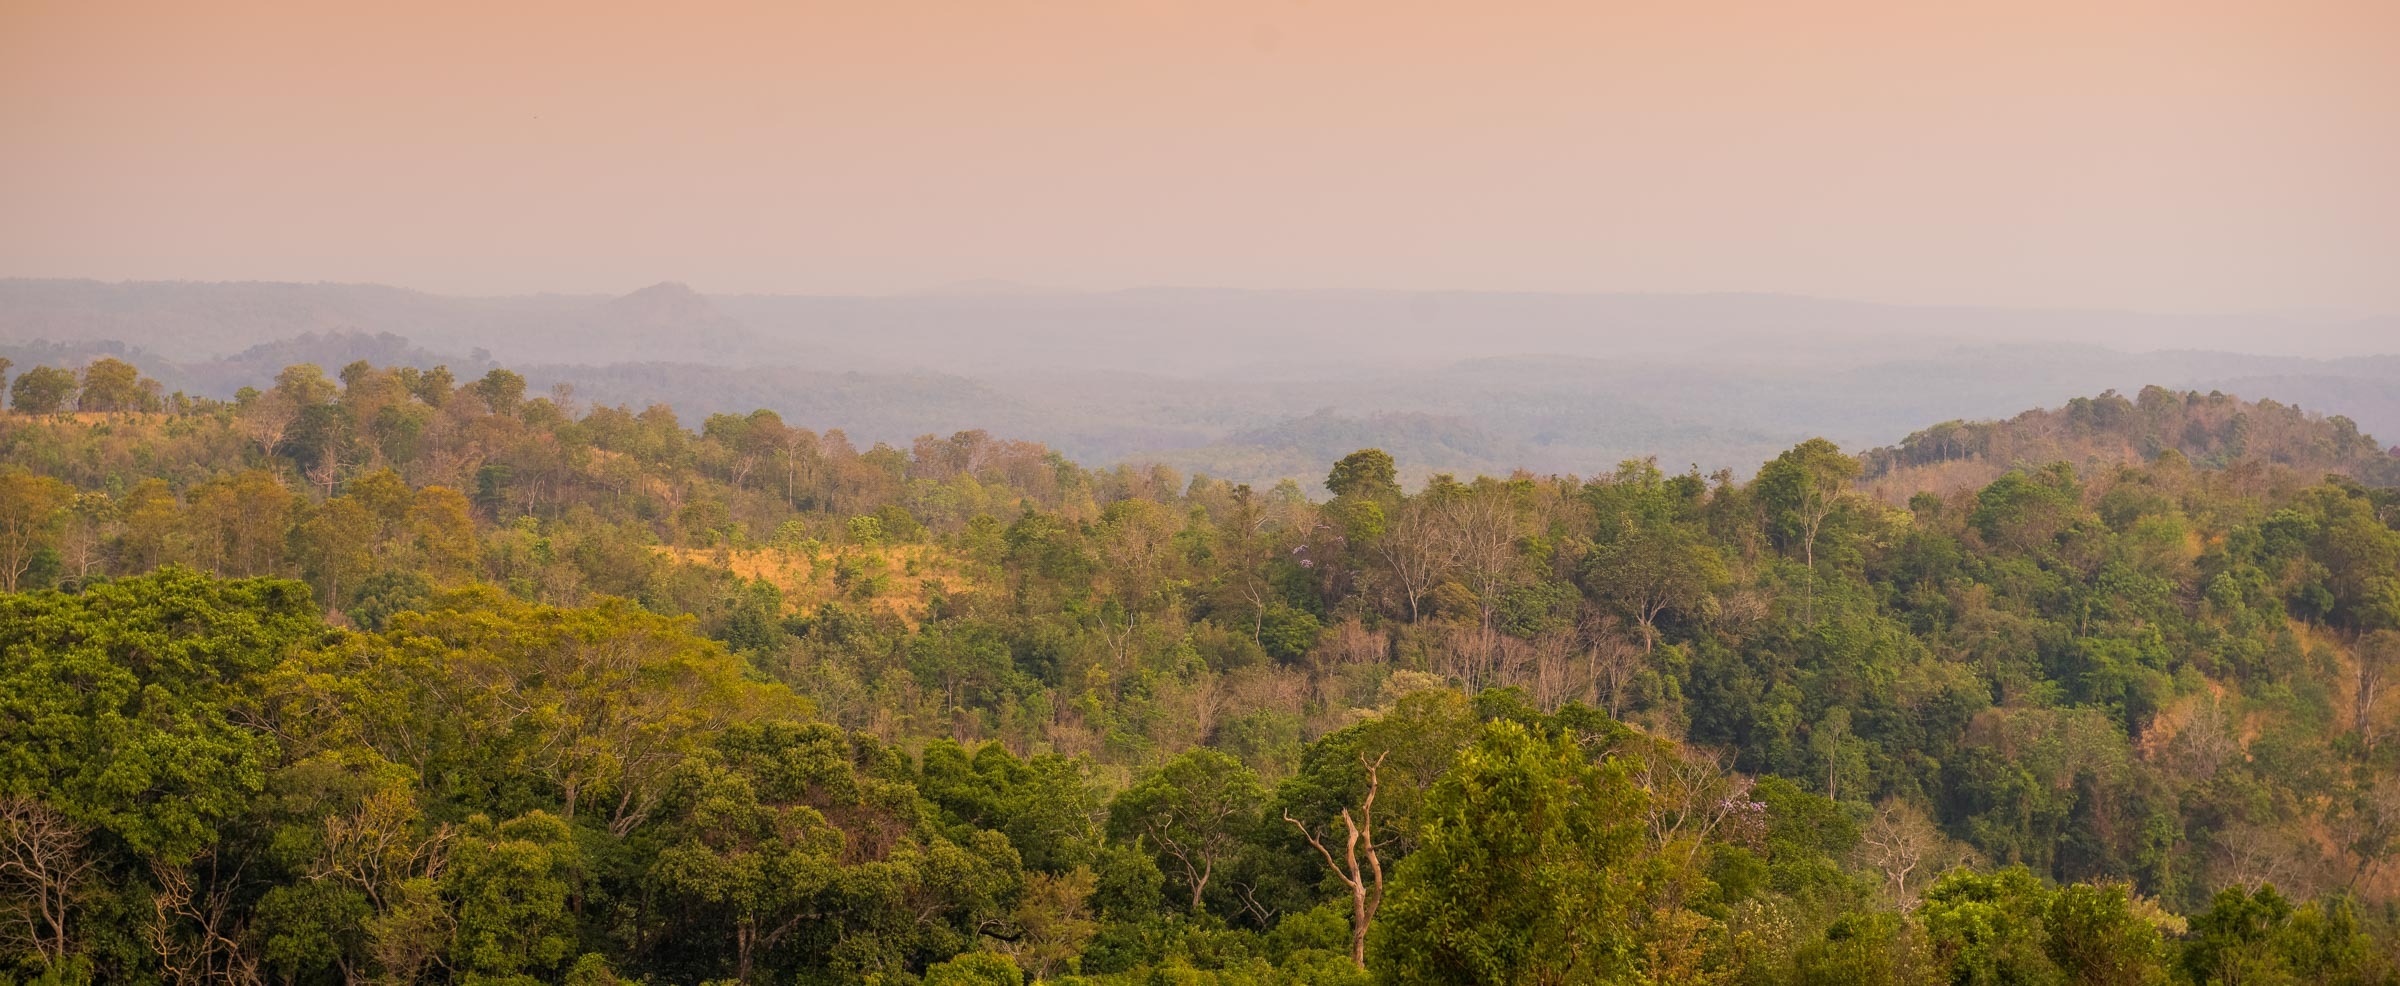 The Mondulkiri Protected Forest is located in eastern Cambodia and is part of maybe the largest protected area complex in southeast Asia.